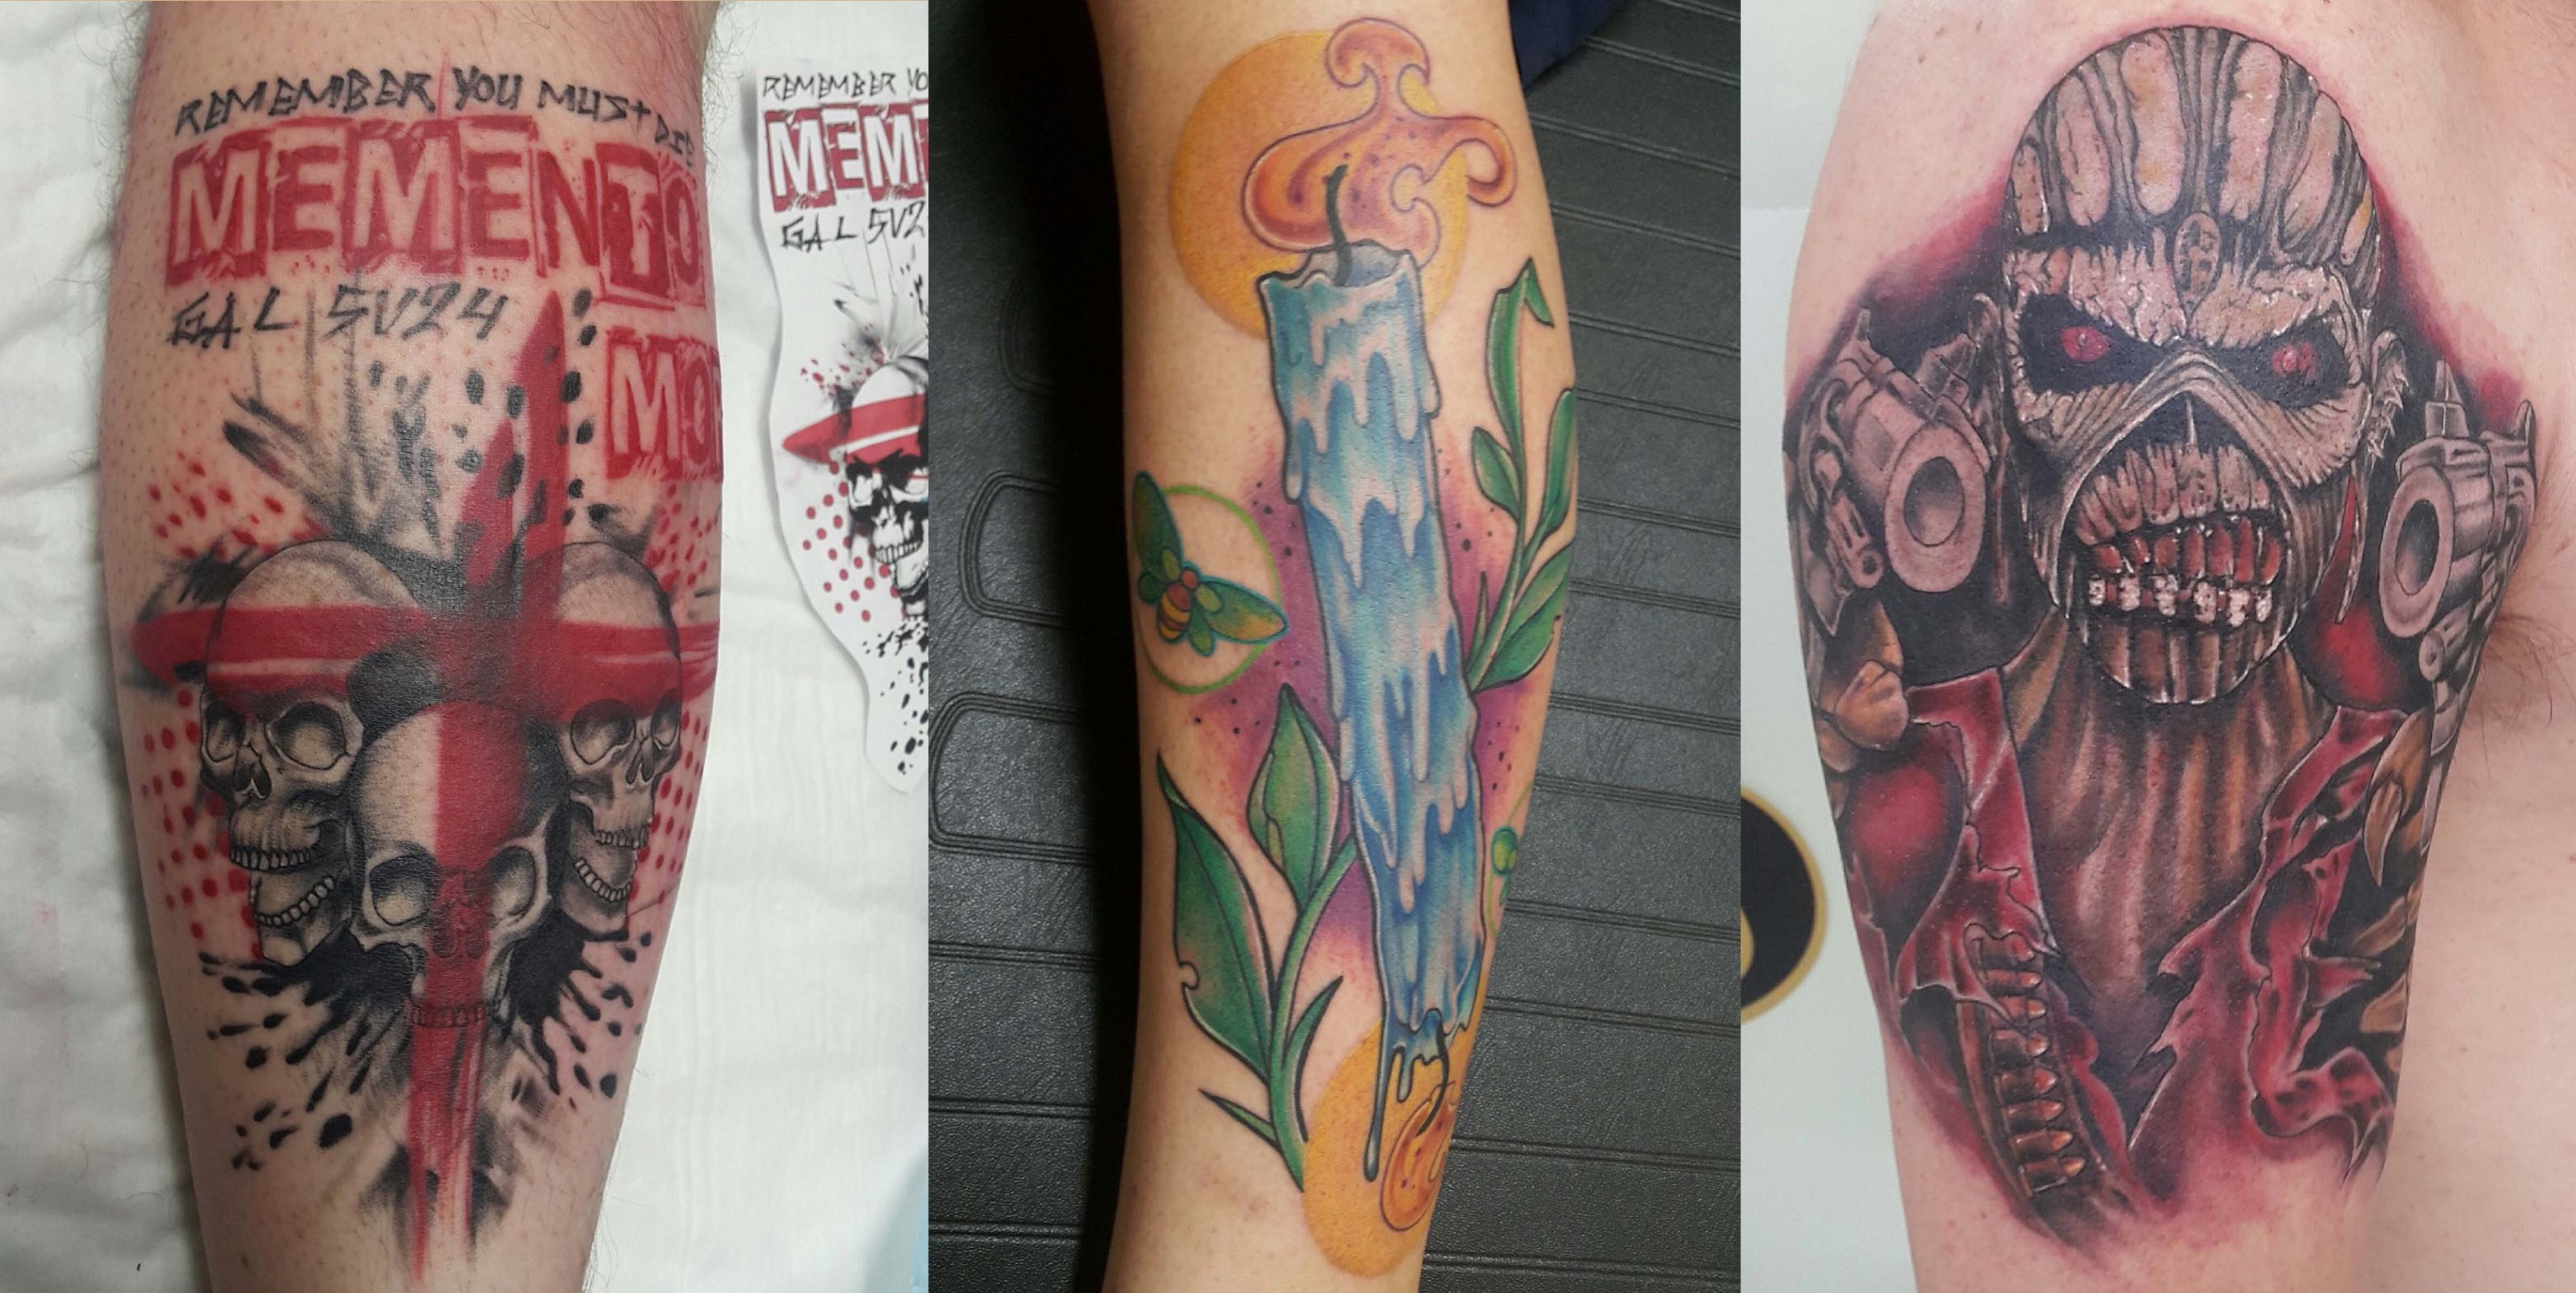 A selection of tattoos down by Rudi Rautenbach